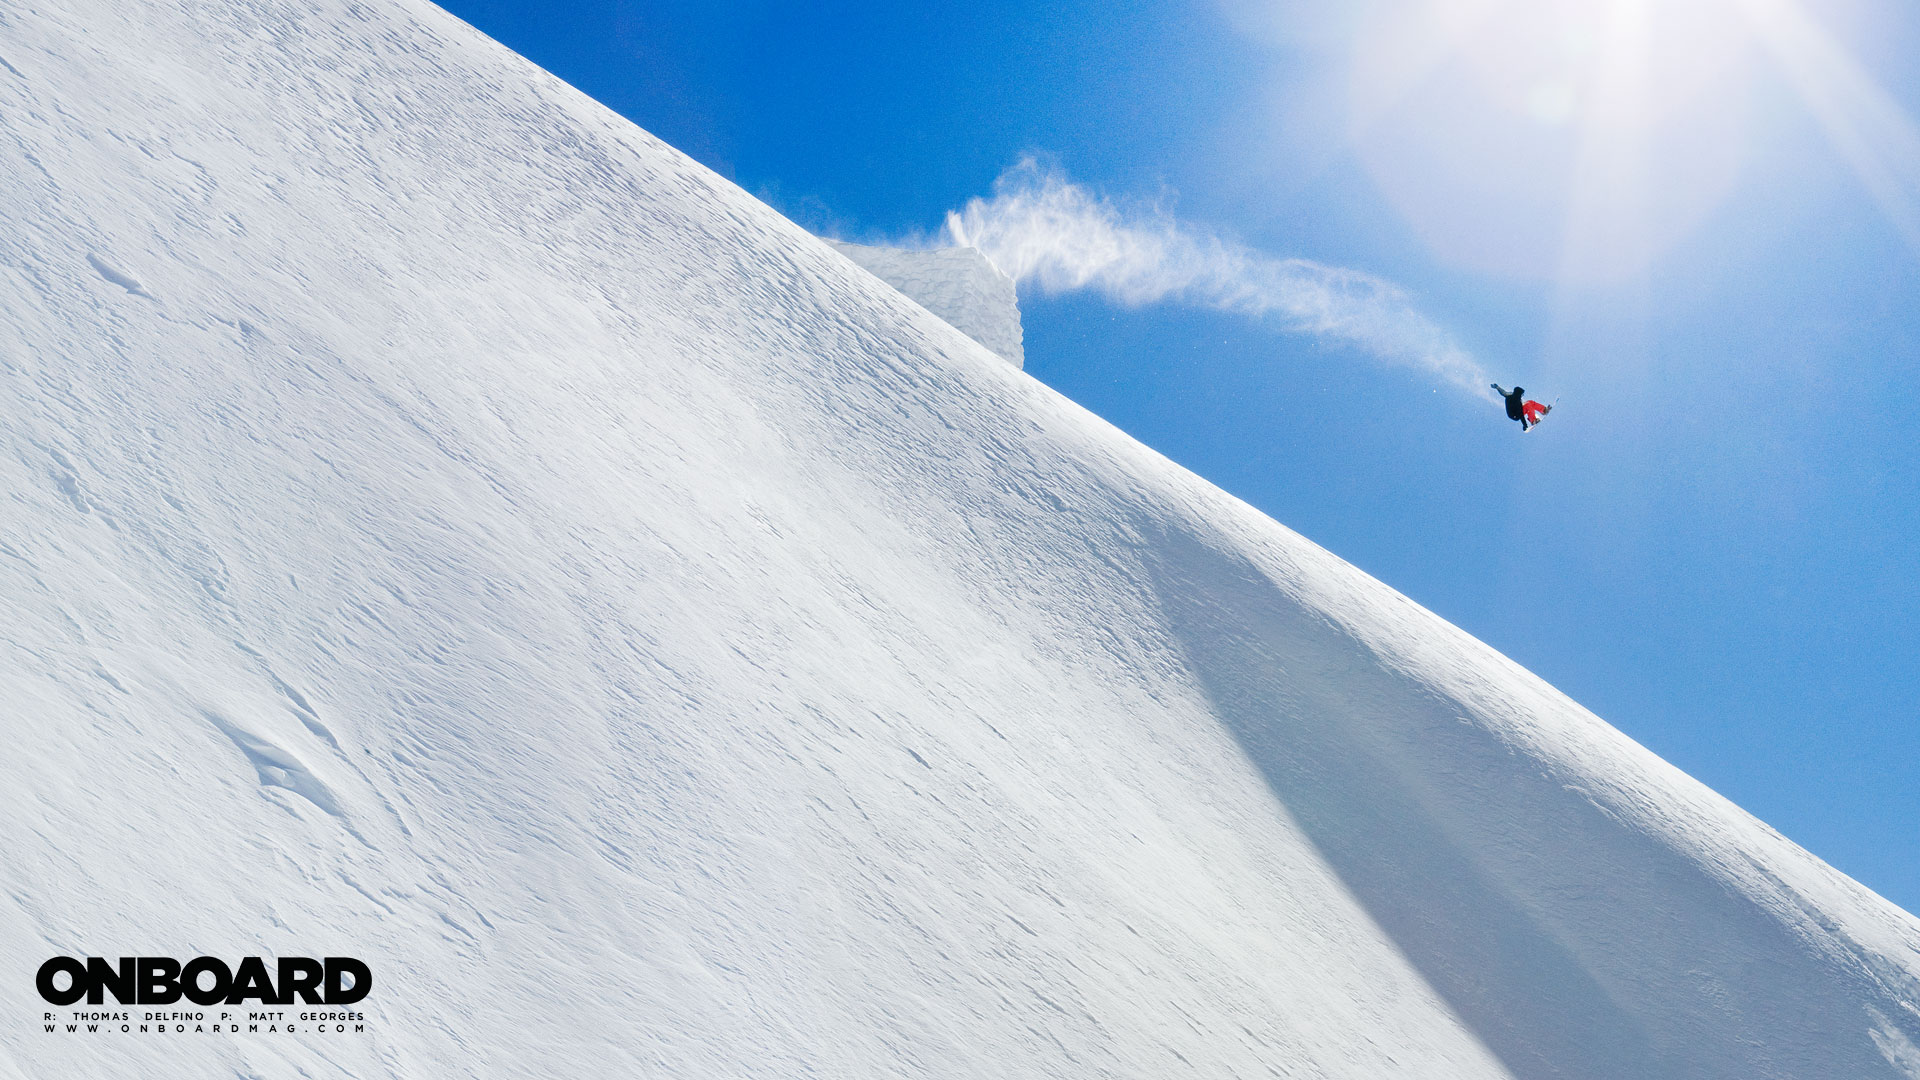 1920x1080 - Snowboarding Wallpapers 17